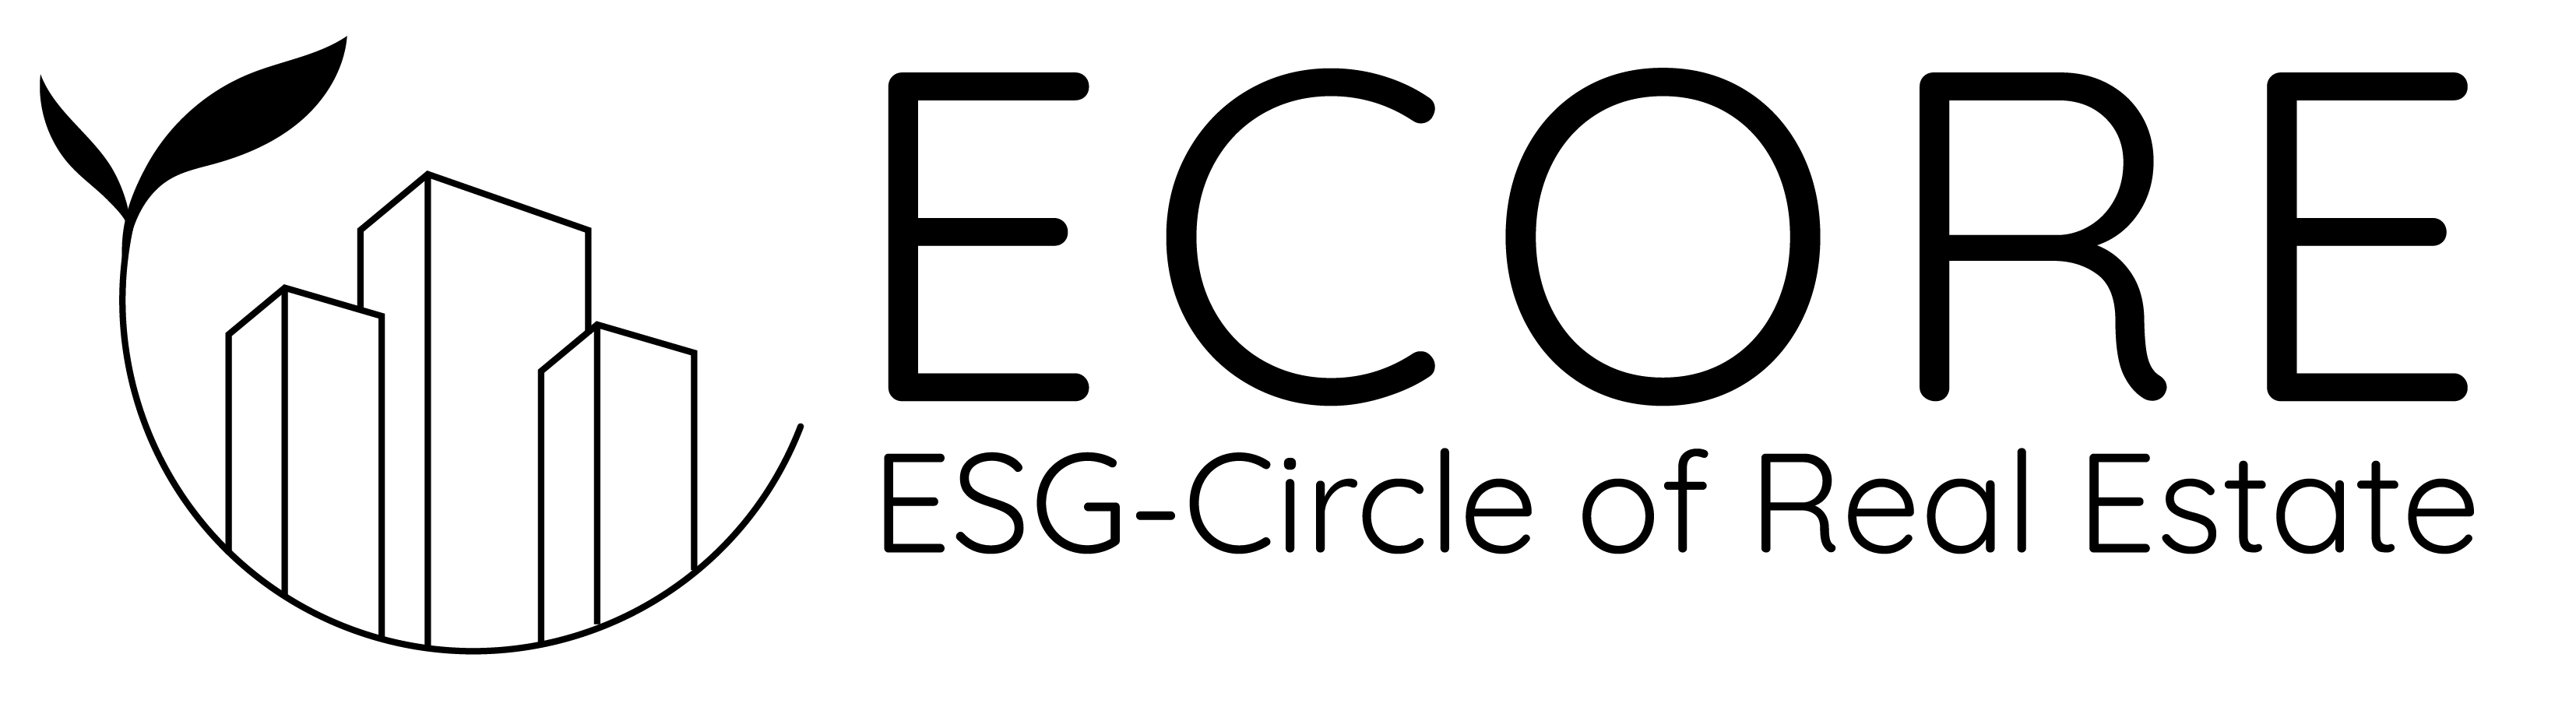 Ecore logo black bg transparent